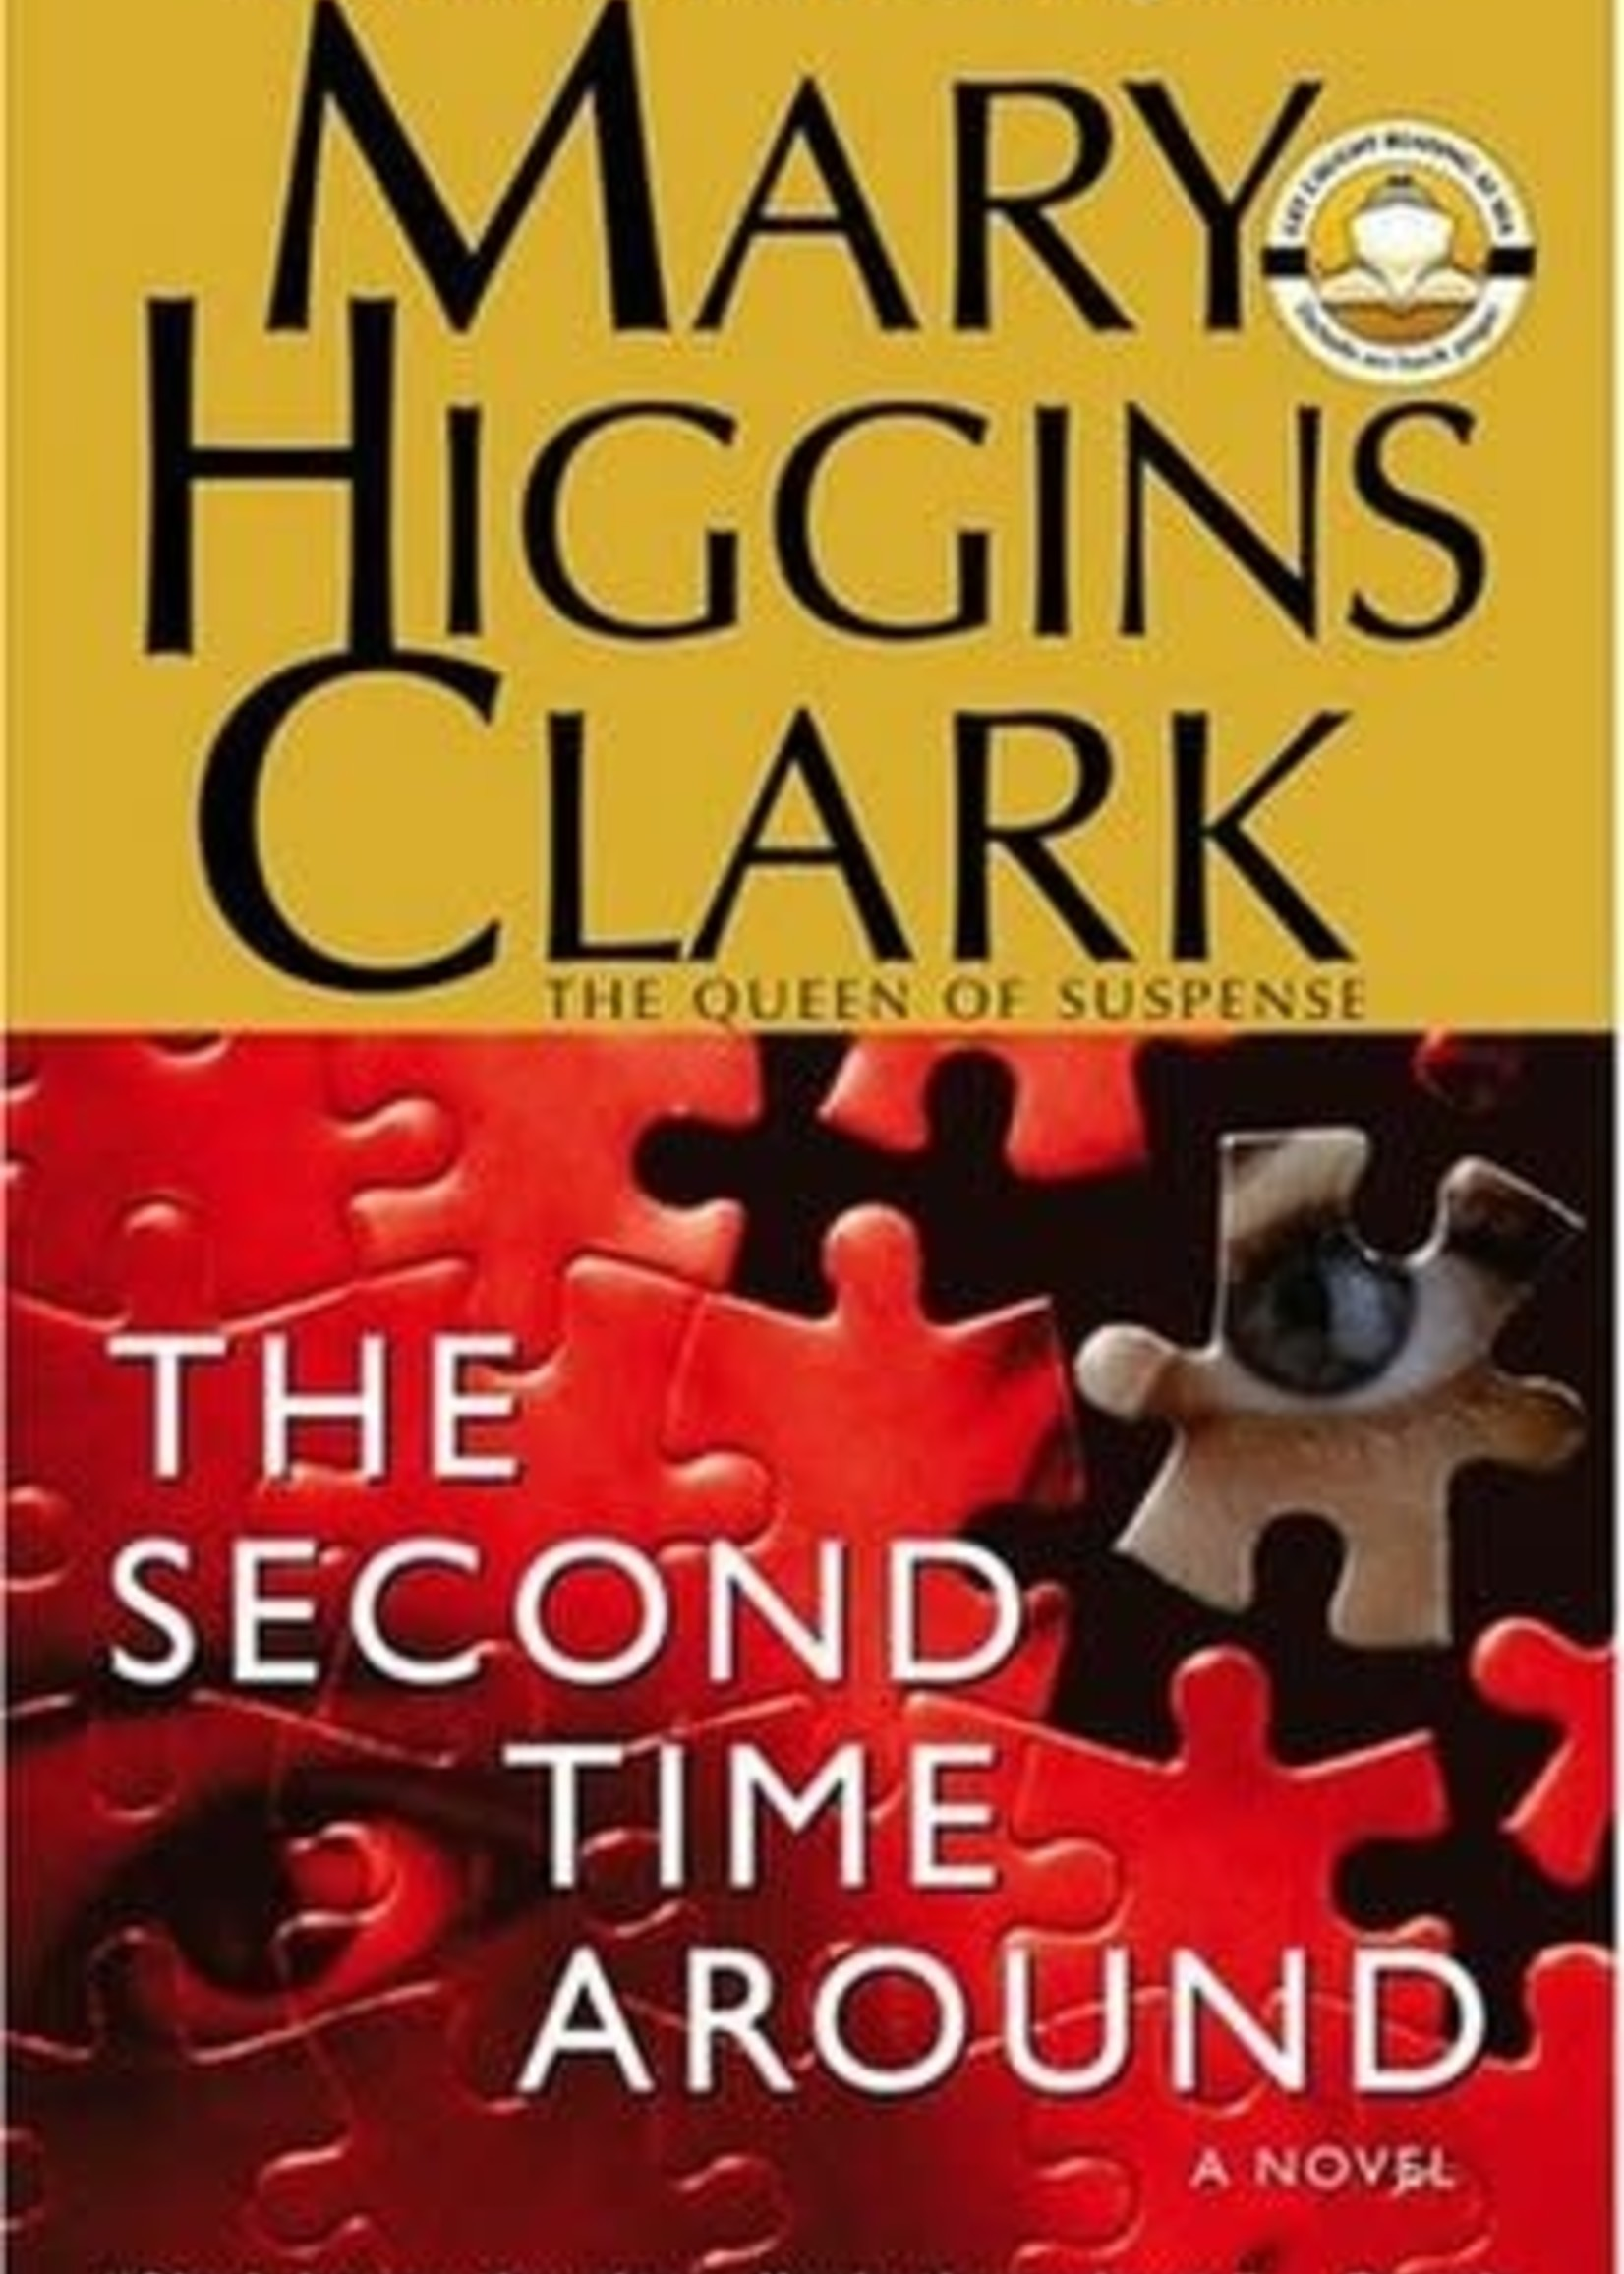 USED - The Second Time Around by Mary Higgins Clark